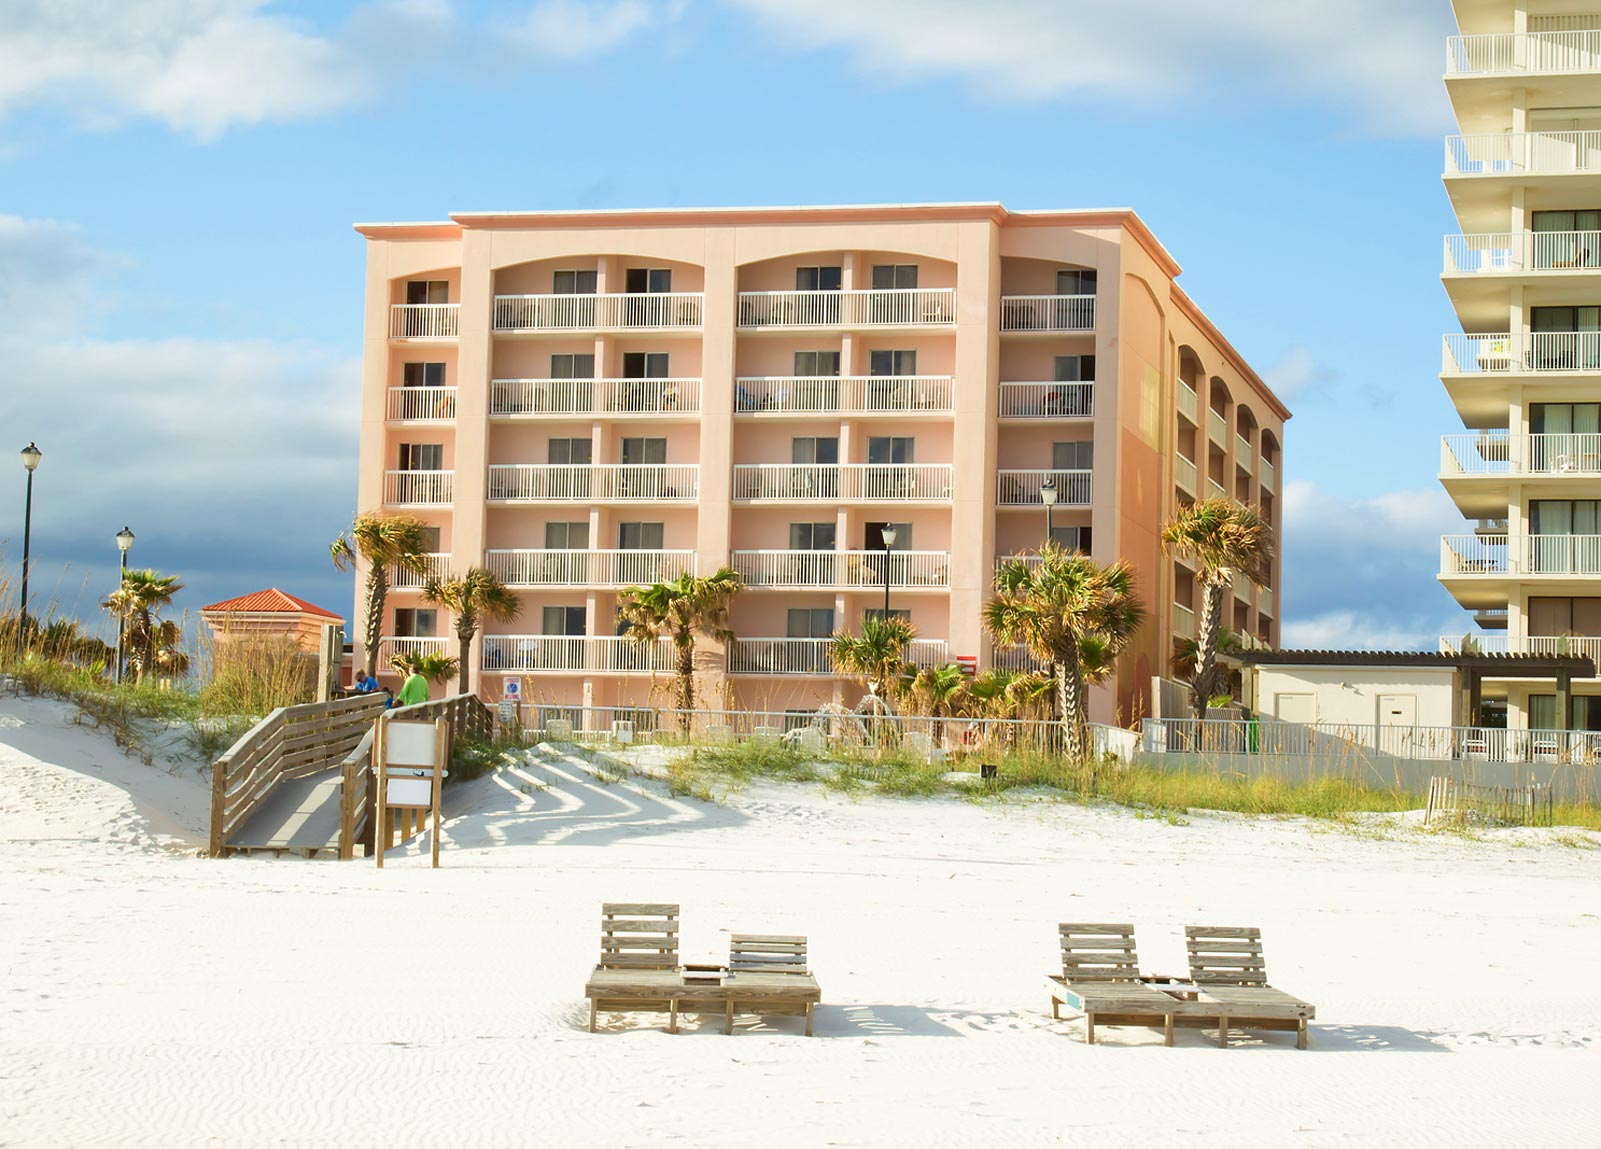 Orange Beach Holiday Inn Express